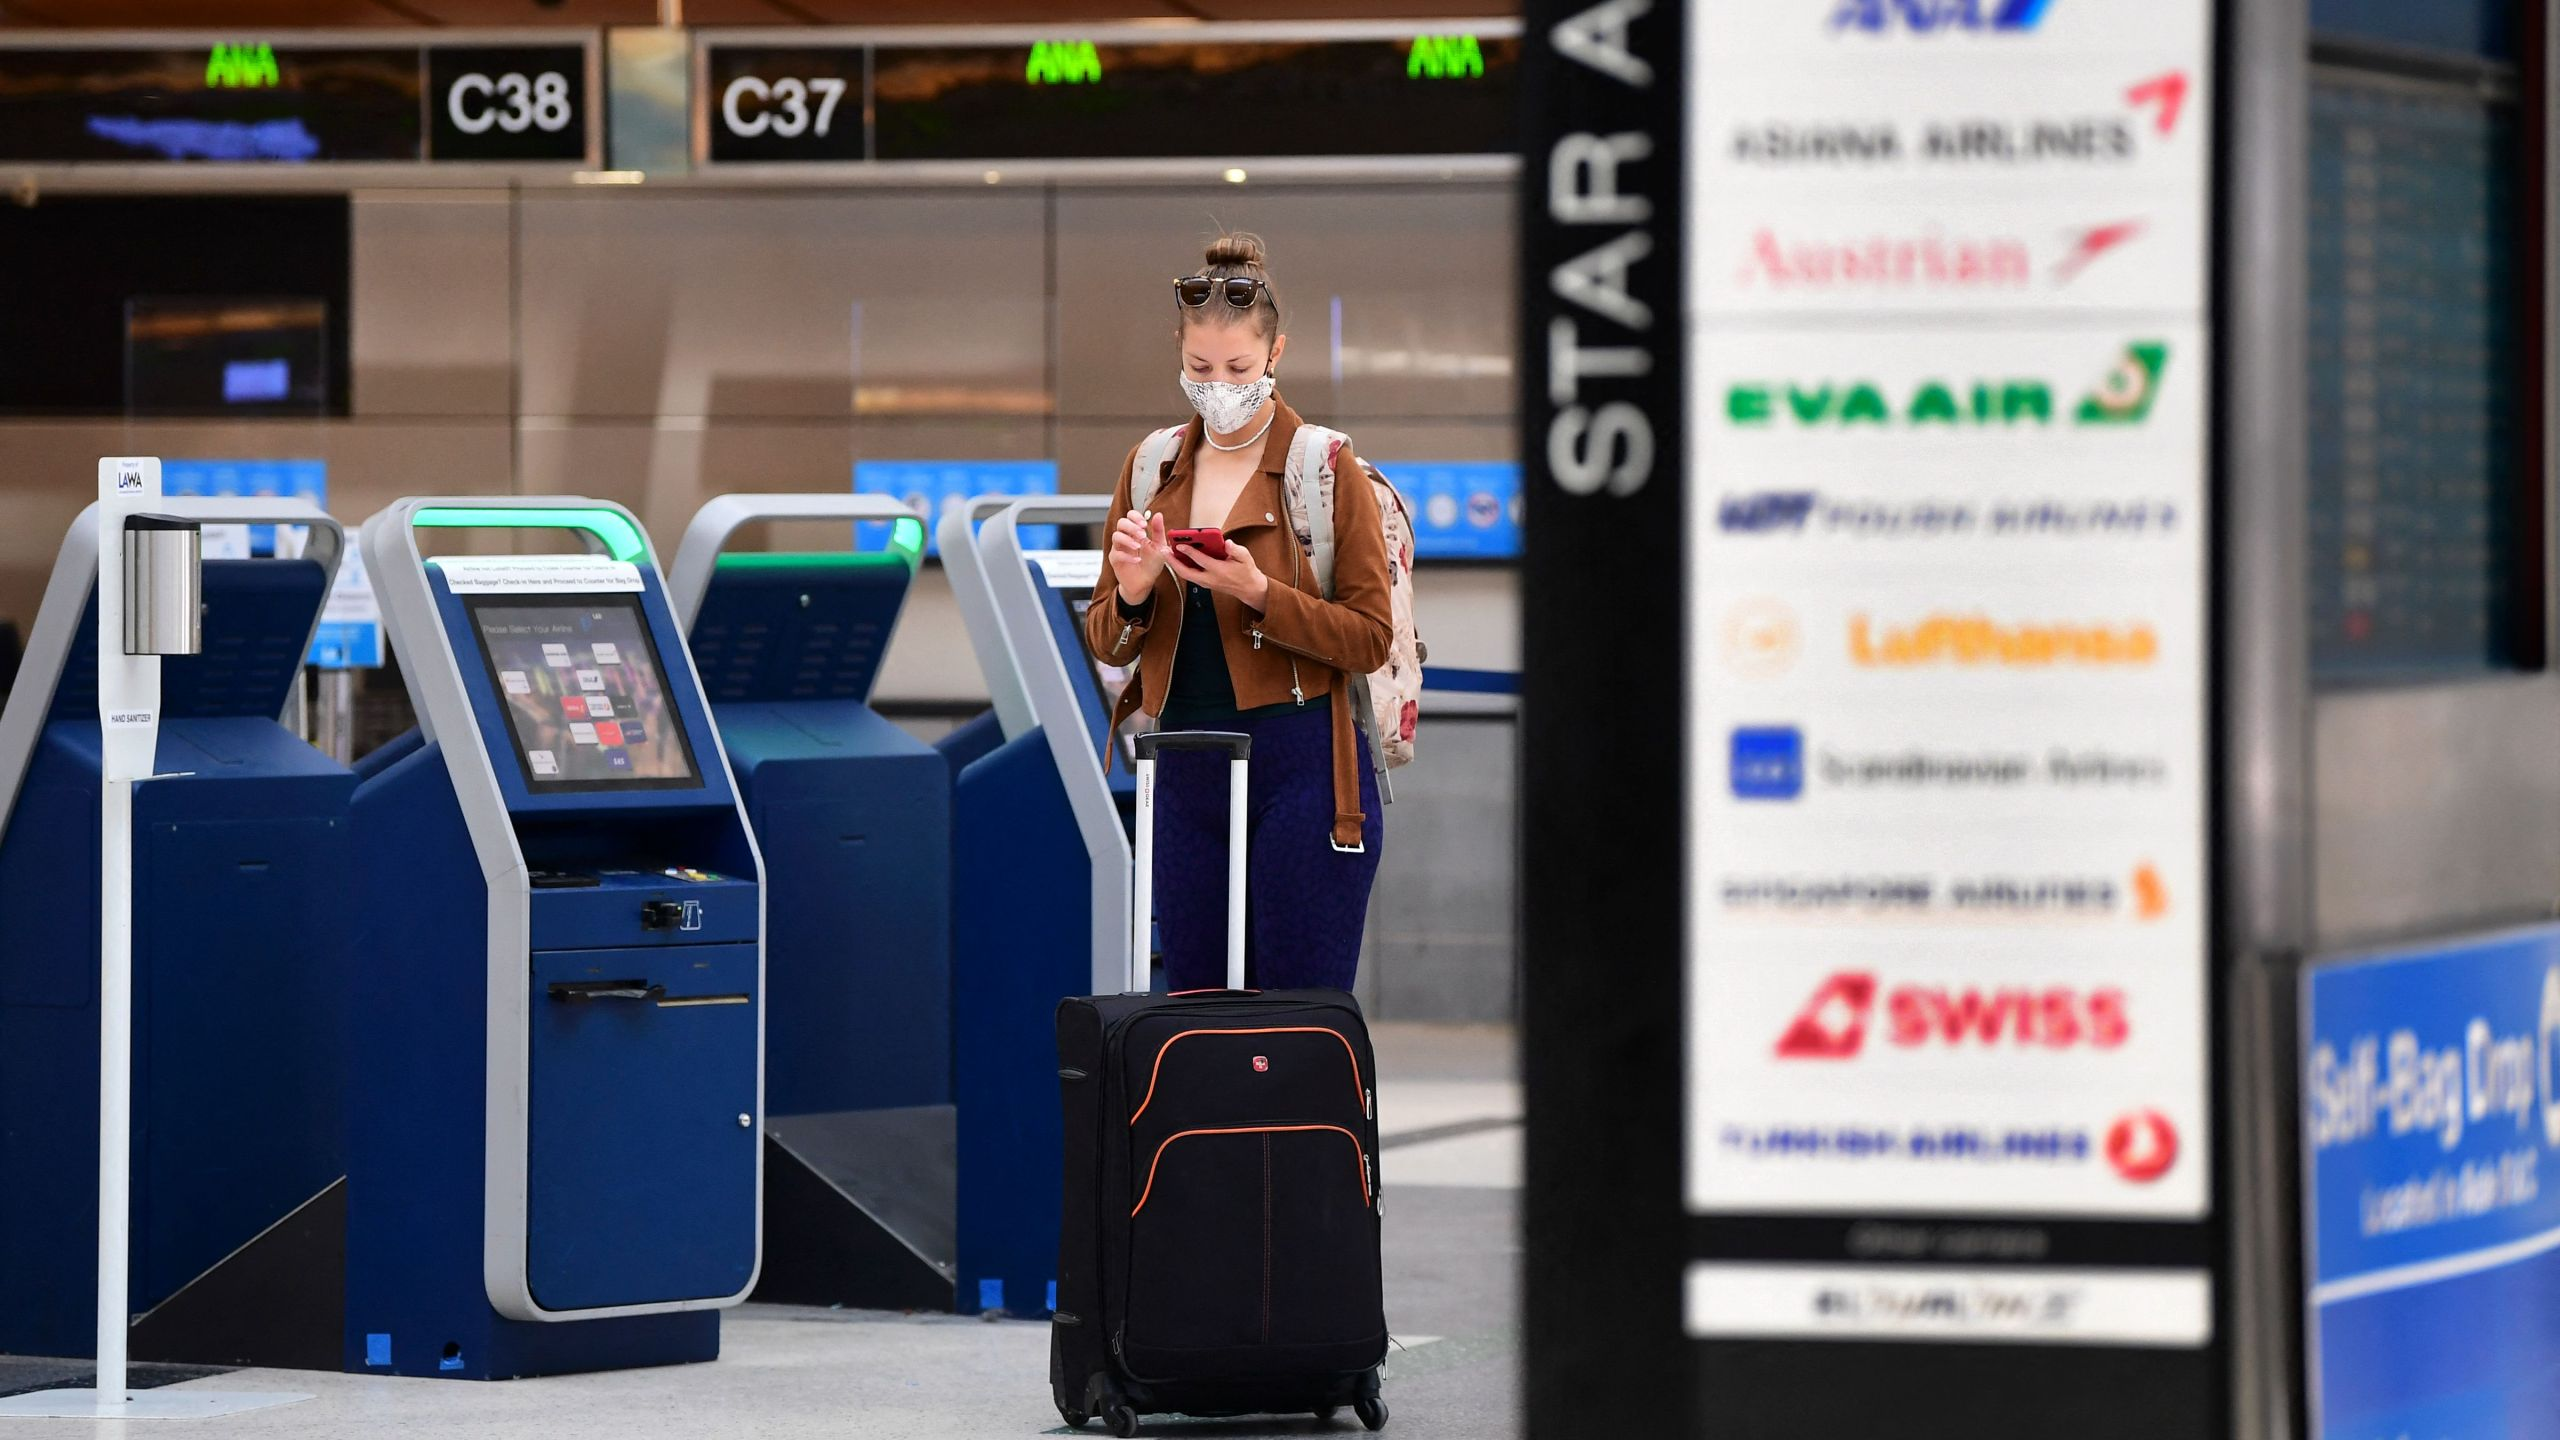 A woman stands by the self check-in kiosks on the departures level of Los Angeles International Airport (LAX) on May 27, 2021 in Los Angeles. (FREDERIC J. BROWN/AFP via Getty Images)